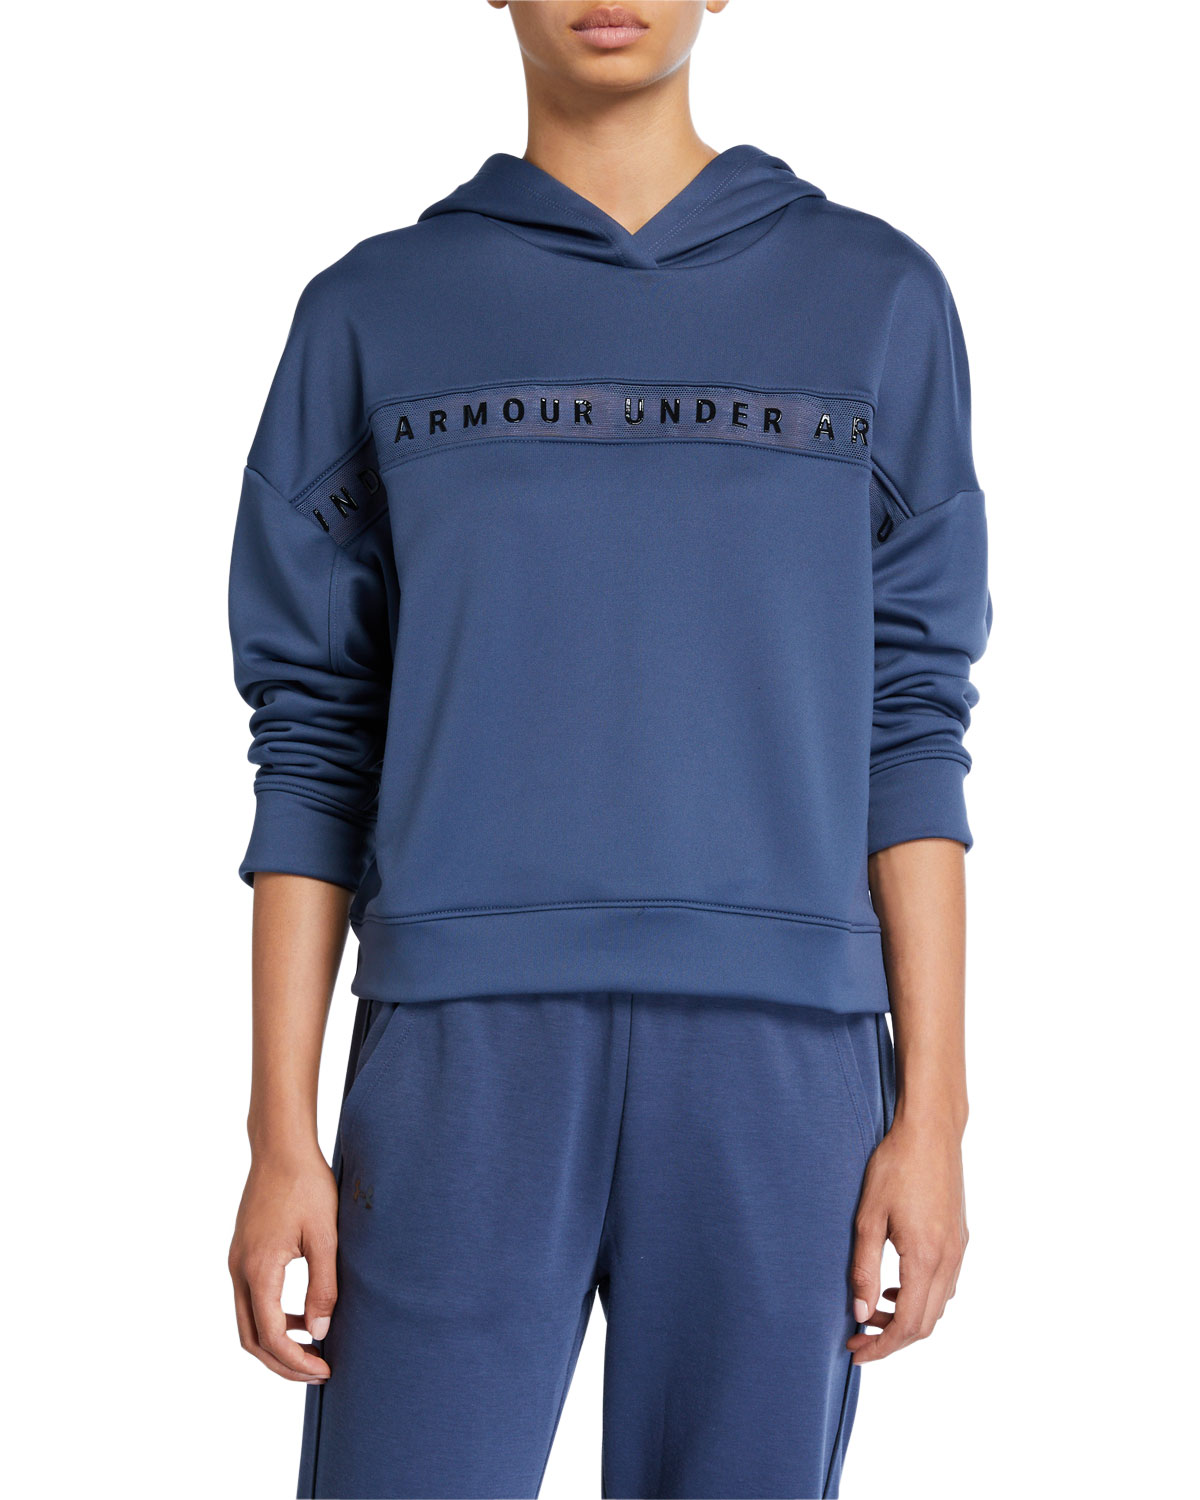 Under Armour Tops TECH TERRY LOGO PULLOVER HOODIE